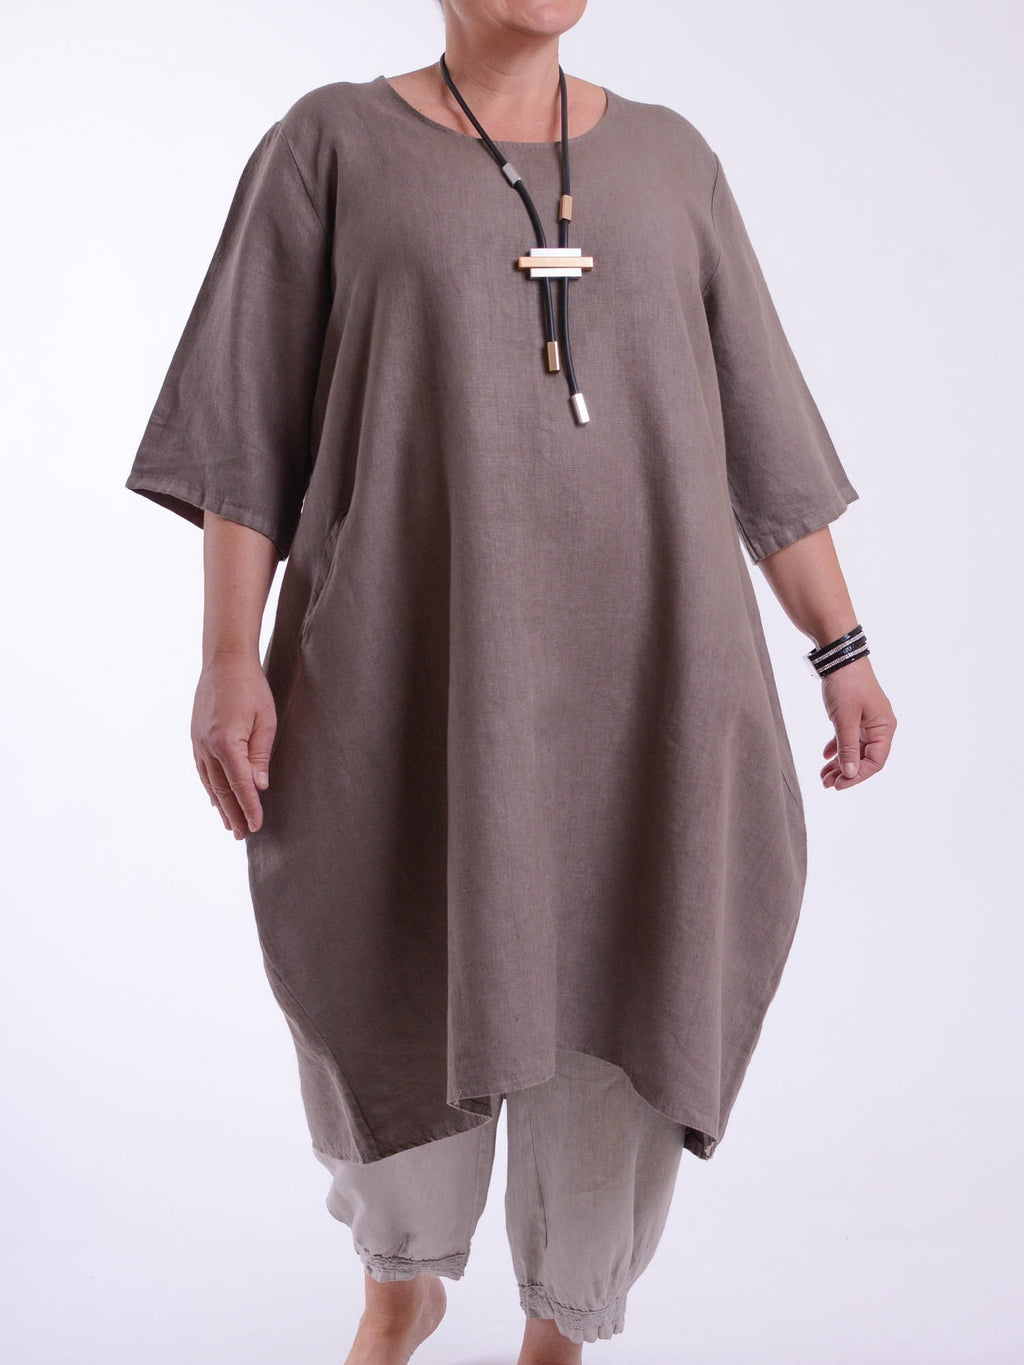 Lagenlook Basic Casual Tunic Dress 9469 - Pure Plus Clothing